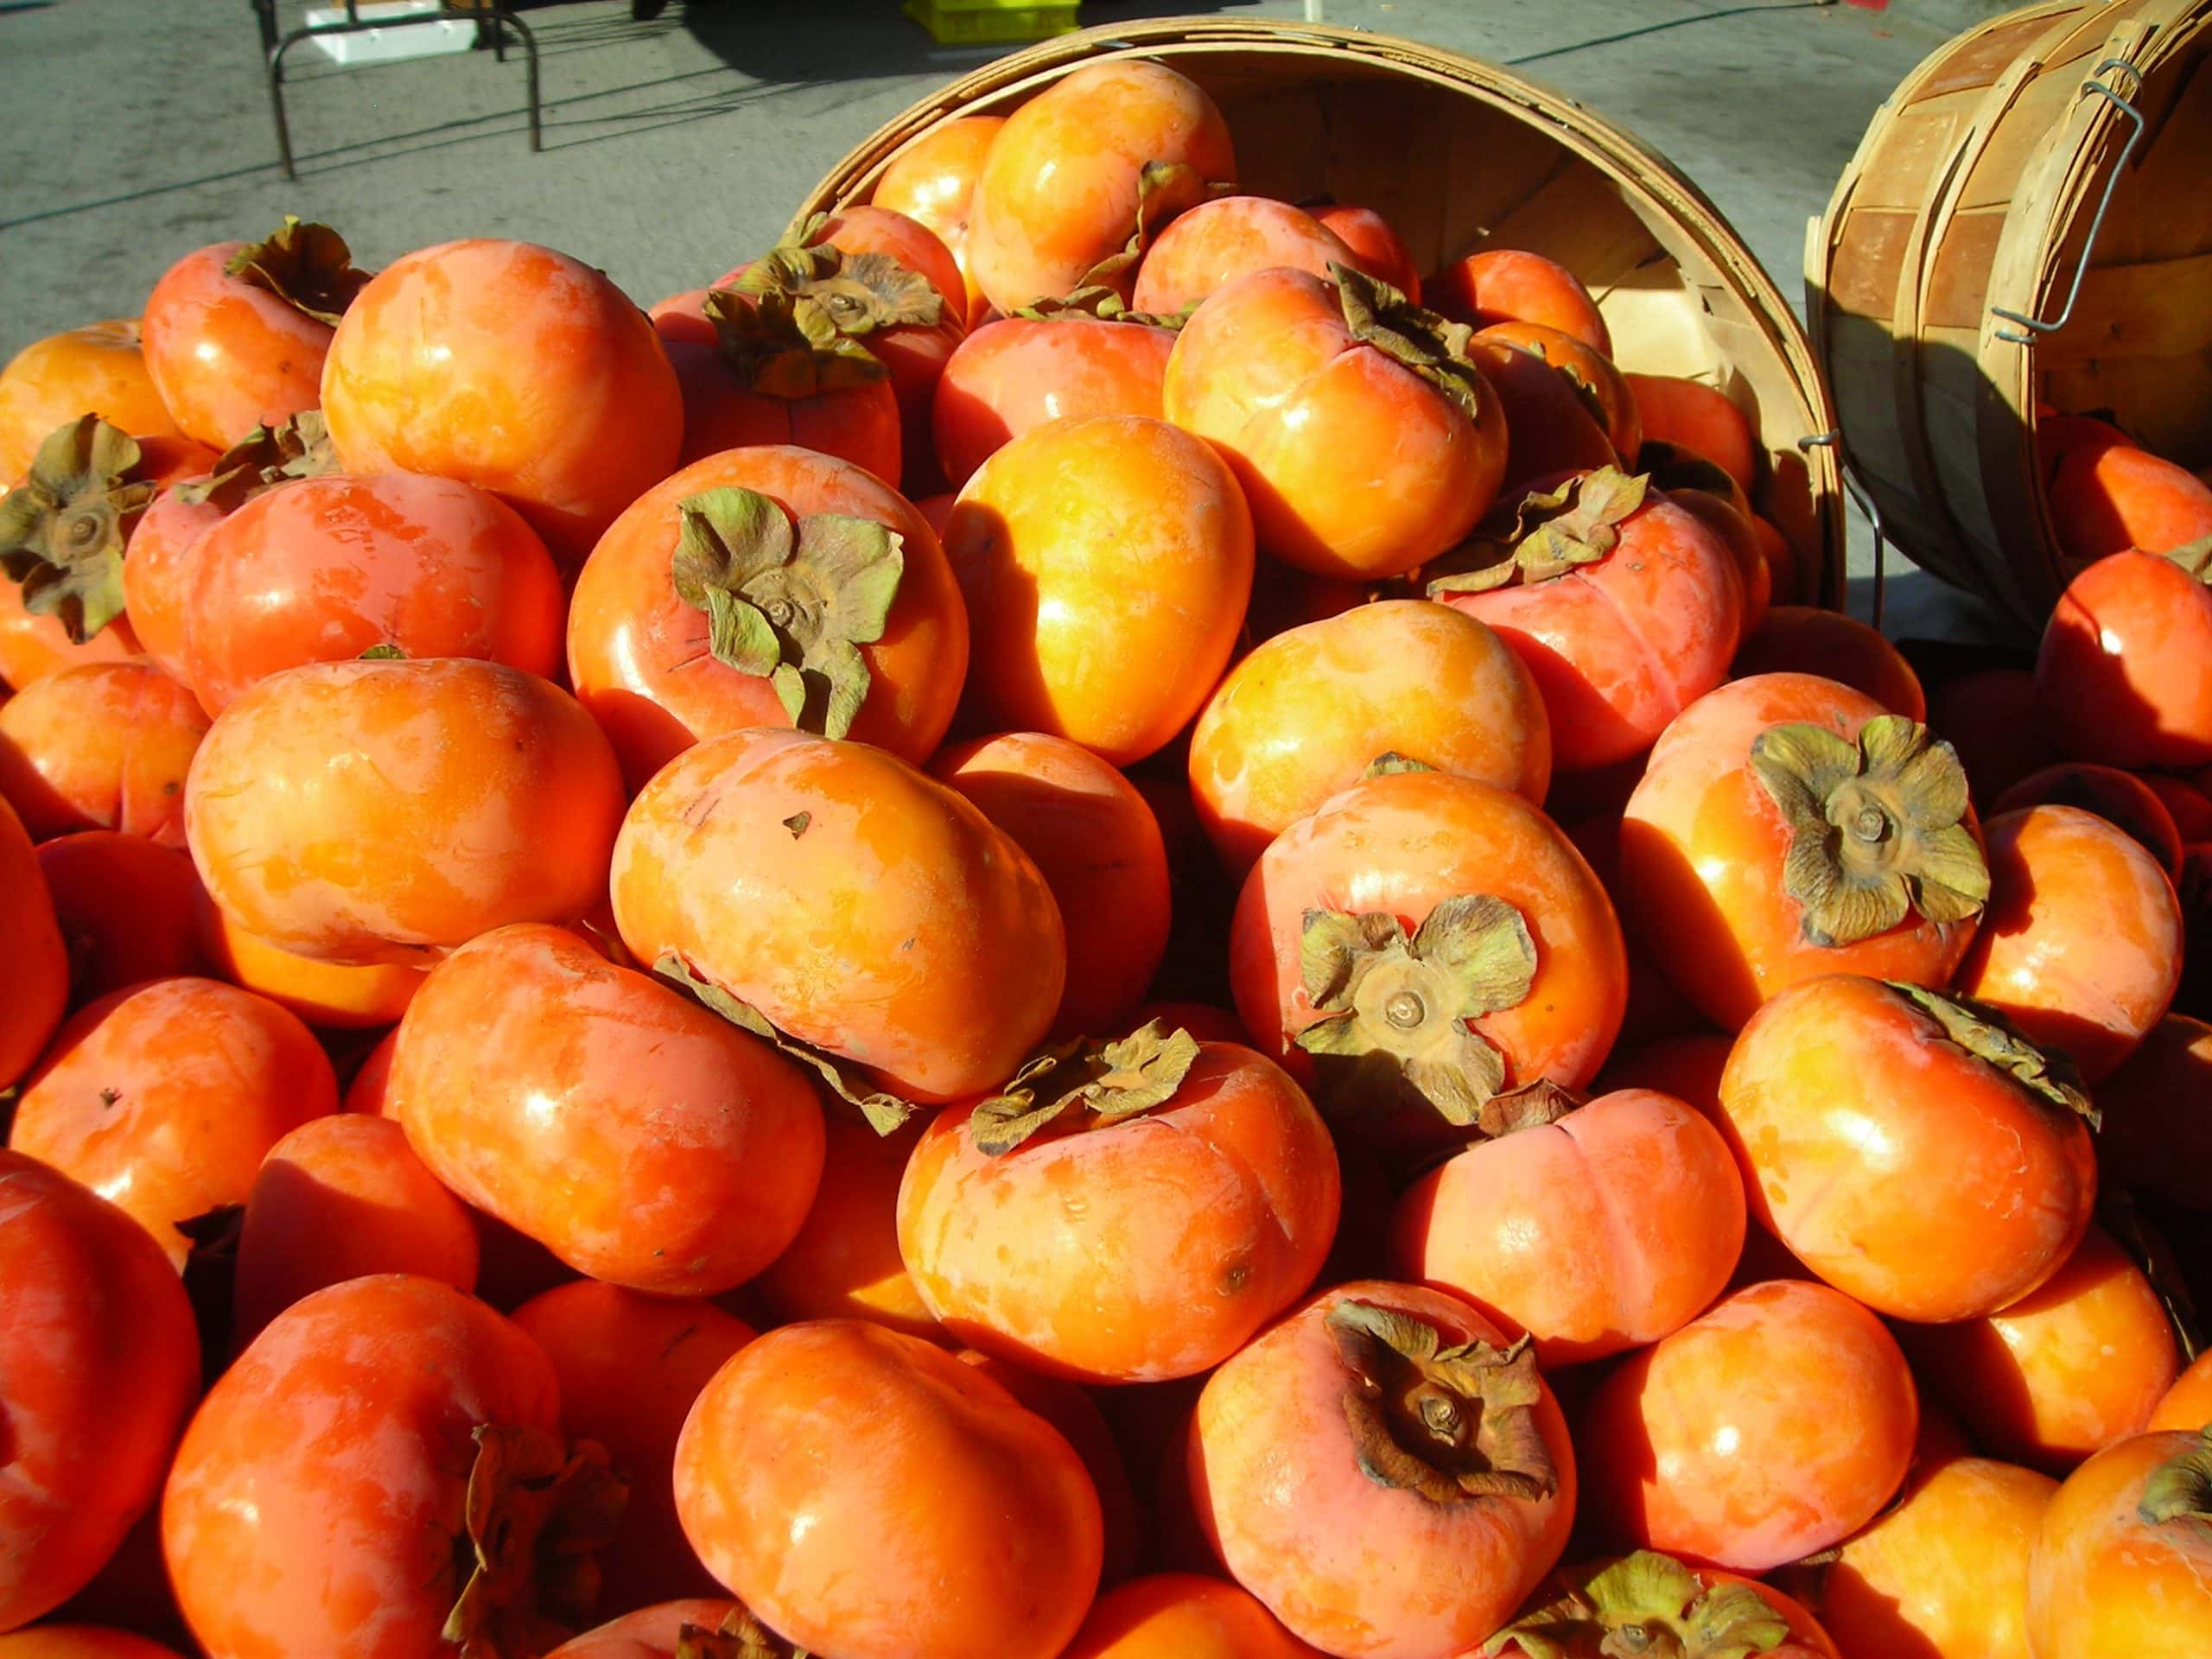 Fuyu and Lapsang - A photo of a pile of fuyu persimmons.